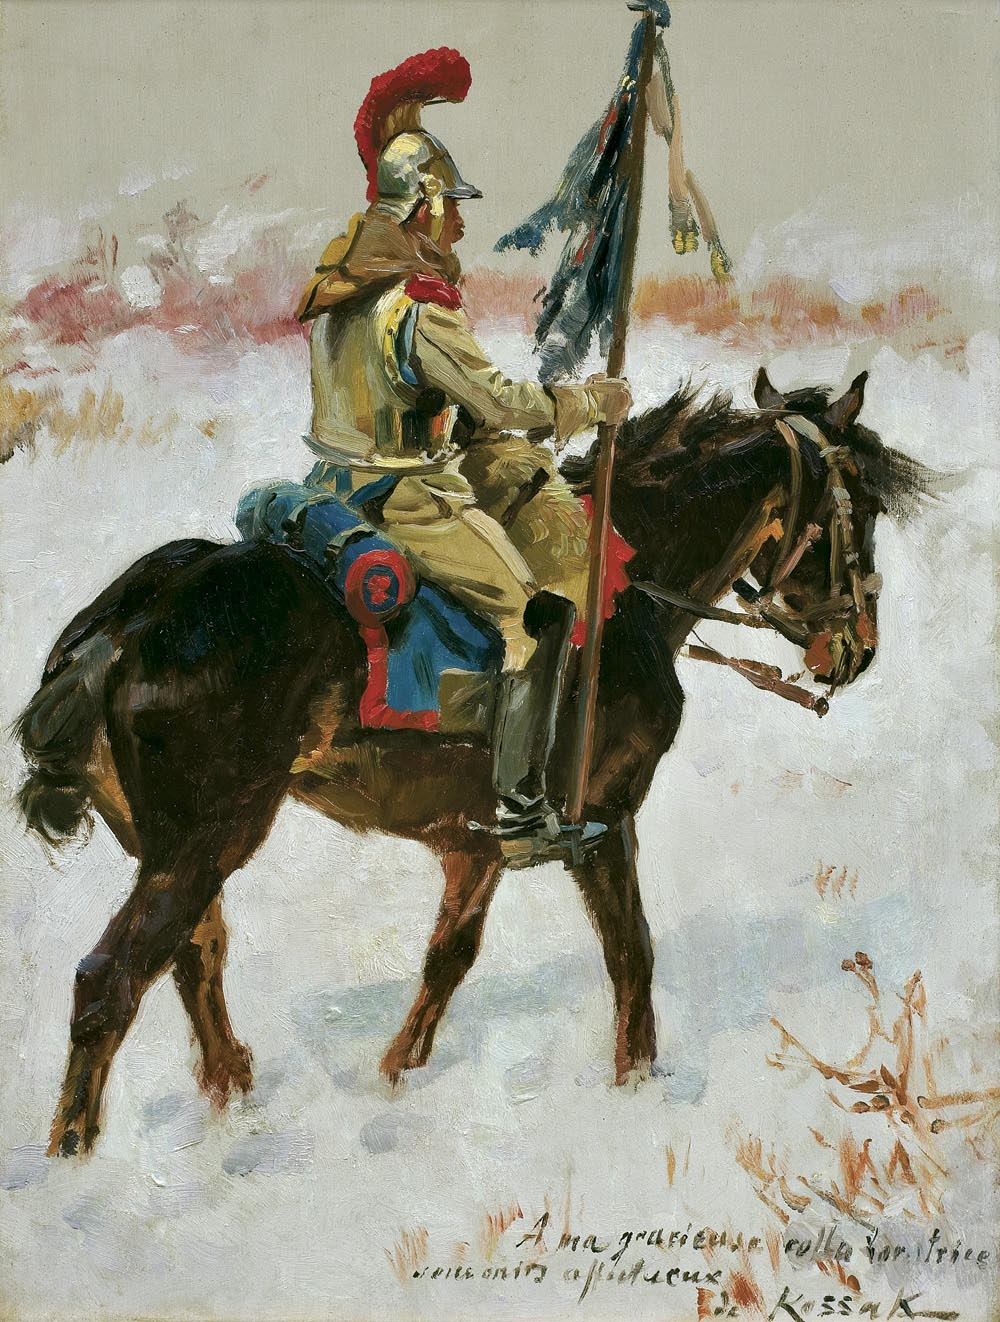 Cuirassier on the Snow